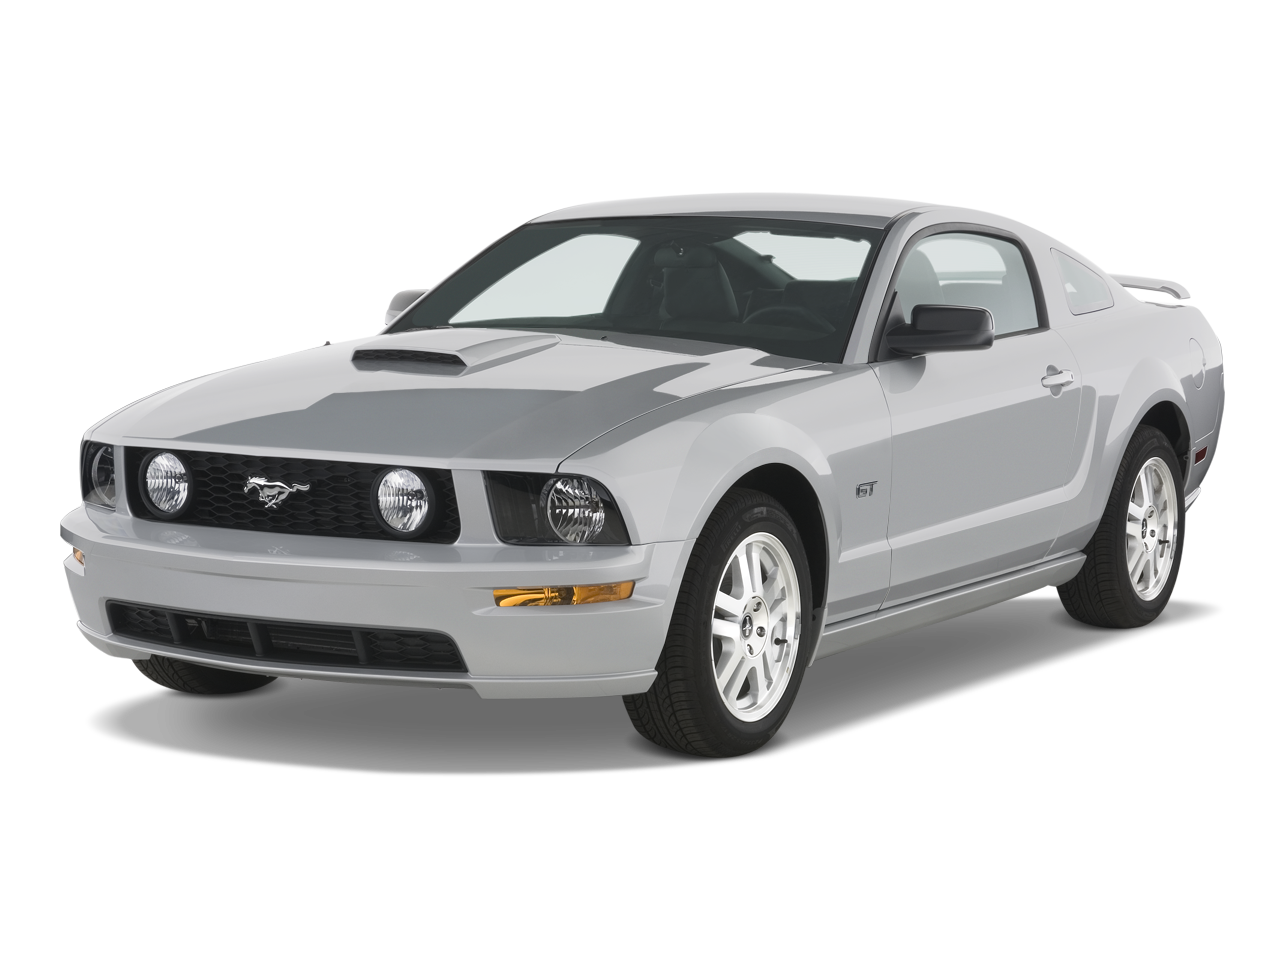 Ford Mustang Png Image Ford Mustang 2008 Ford Mustang Ford Mustang Gt